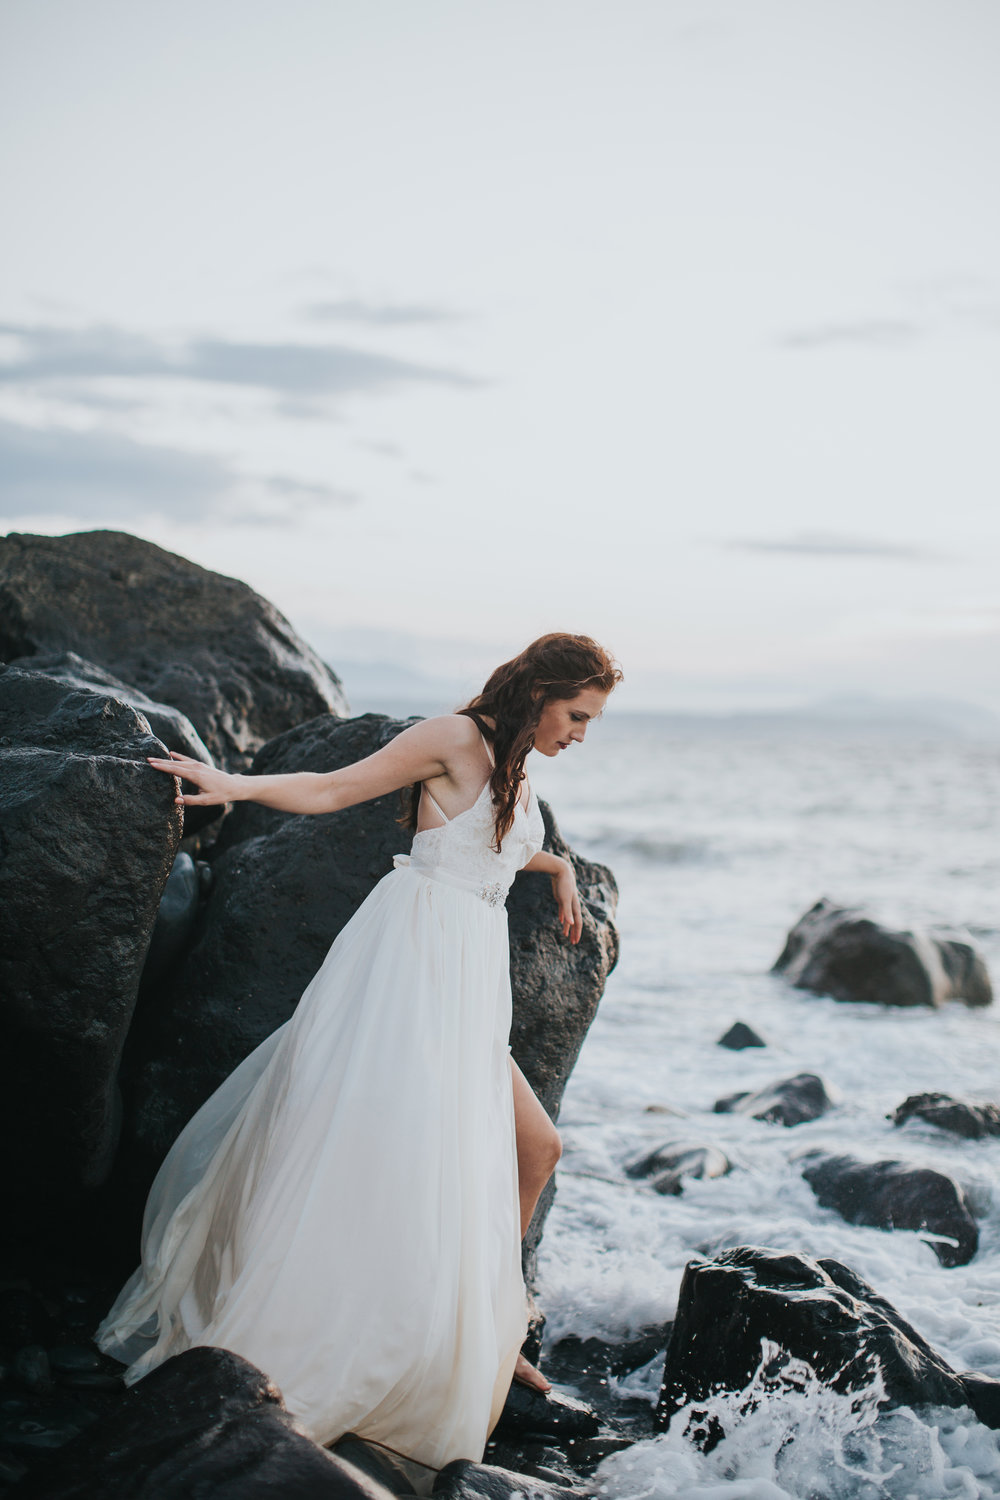 Port-Angeles-Photographer-Olympic-Peninsula-Wedding-Ediz-Hook-bride-dress-Kayla-Dawn-Photography-Olympic-Peninsula-PNW-Photographer-Portrait-Portraiture-Natural-Golden-Hour-Beach (10).jpg